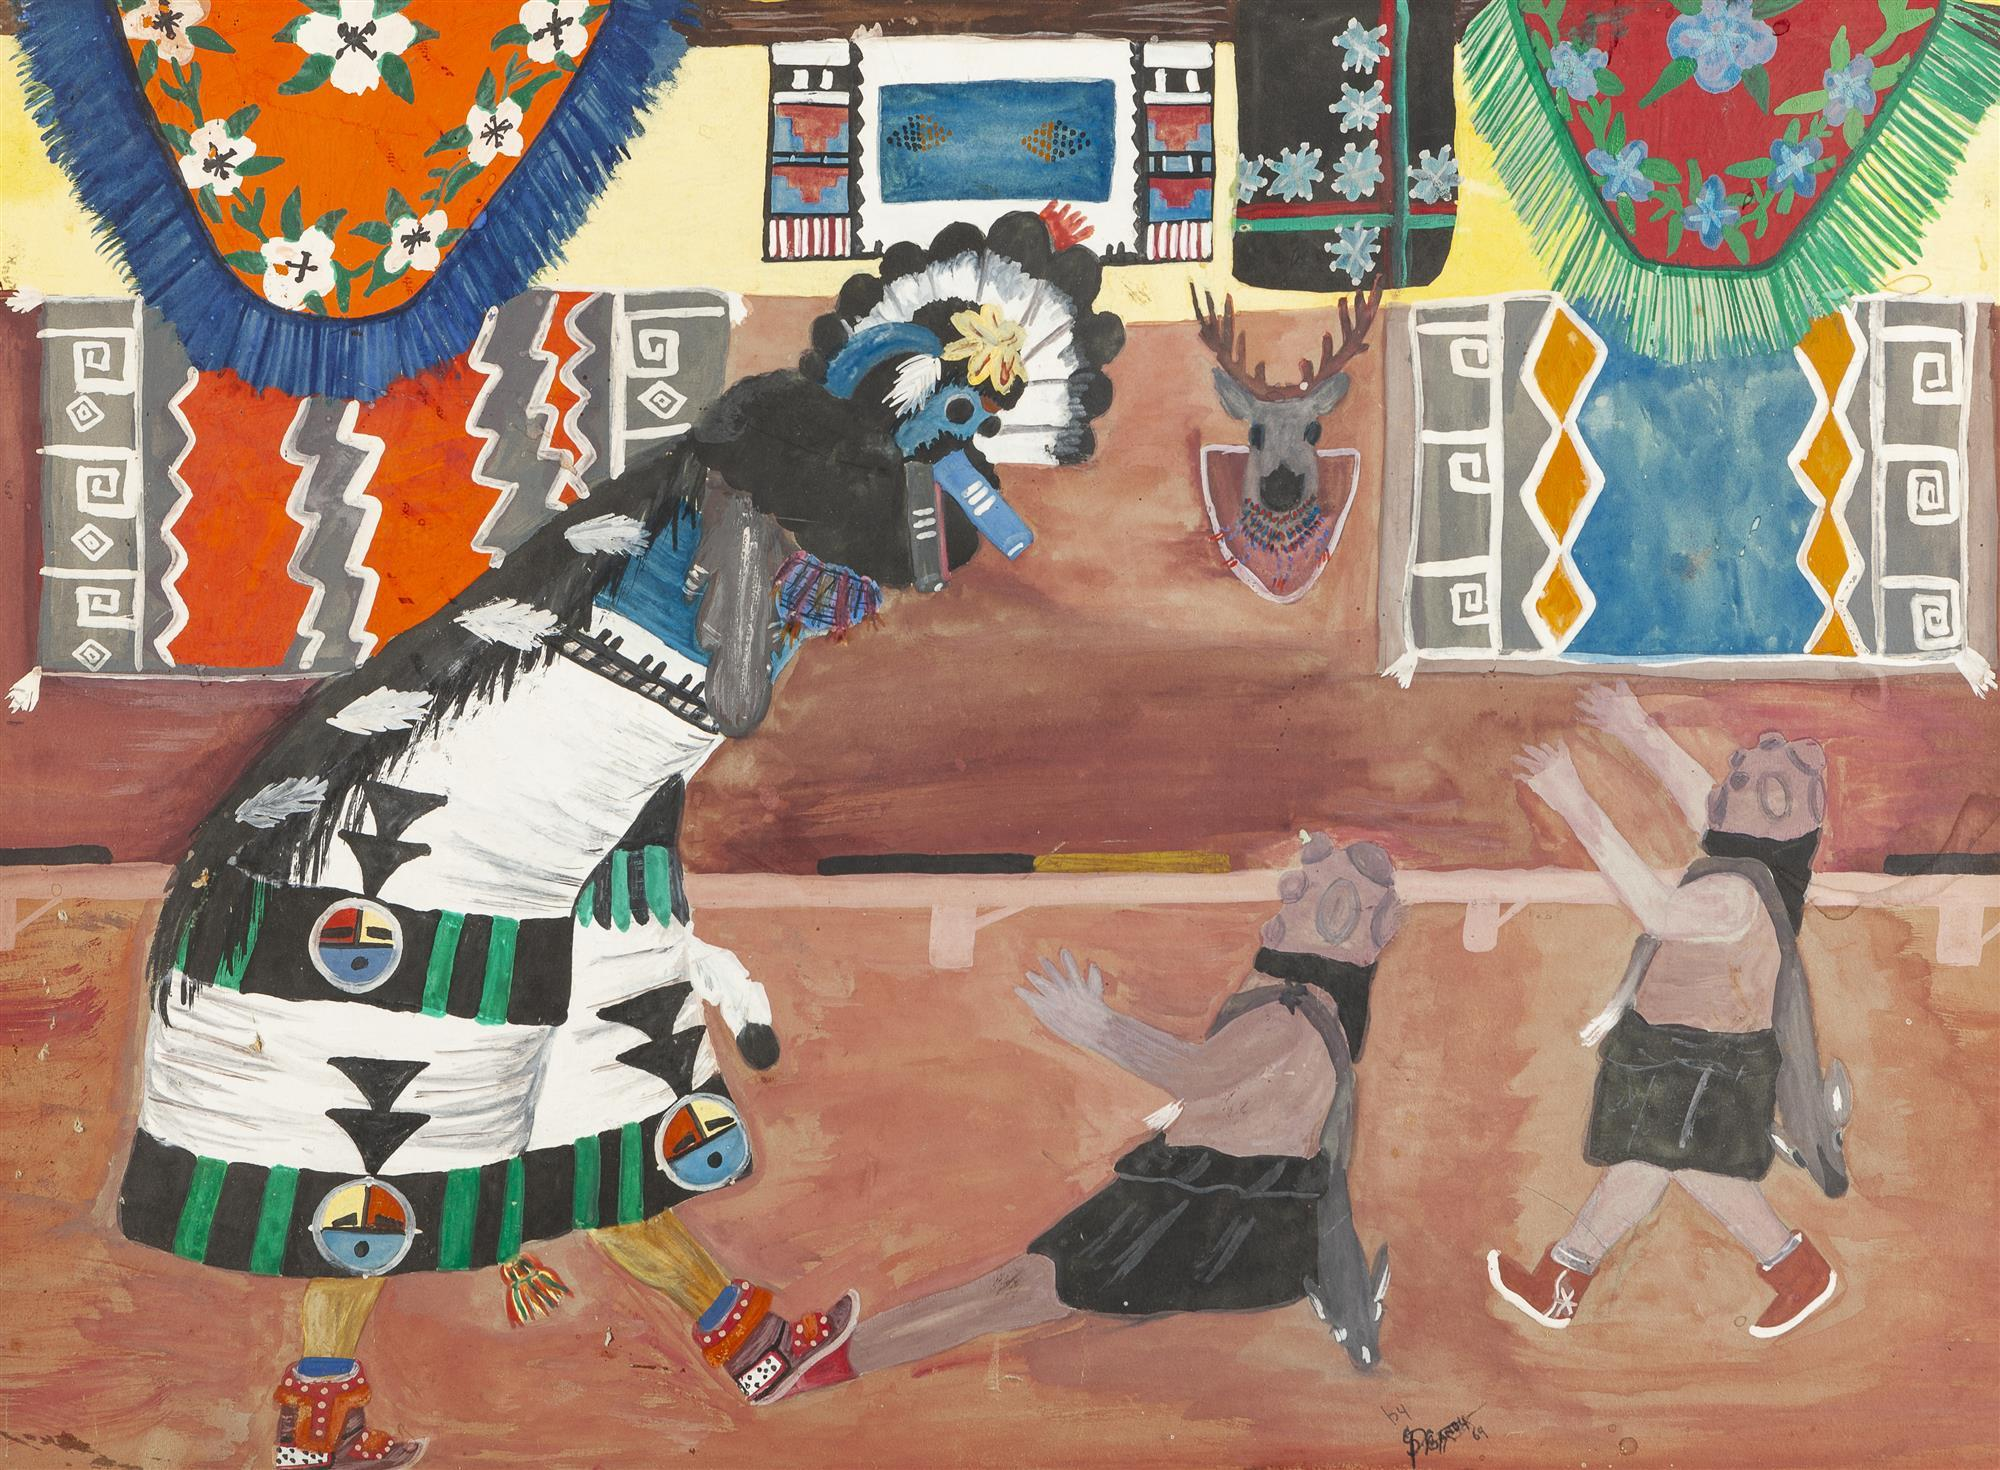 "Percy Sandy, (1918-1974 Taos, NM), Dance ceremony, 1969, Gouache on board under glass, Sight: 15.25"" H x 21"" W"